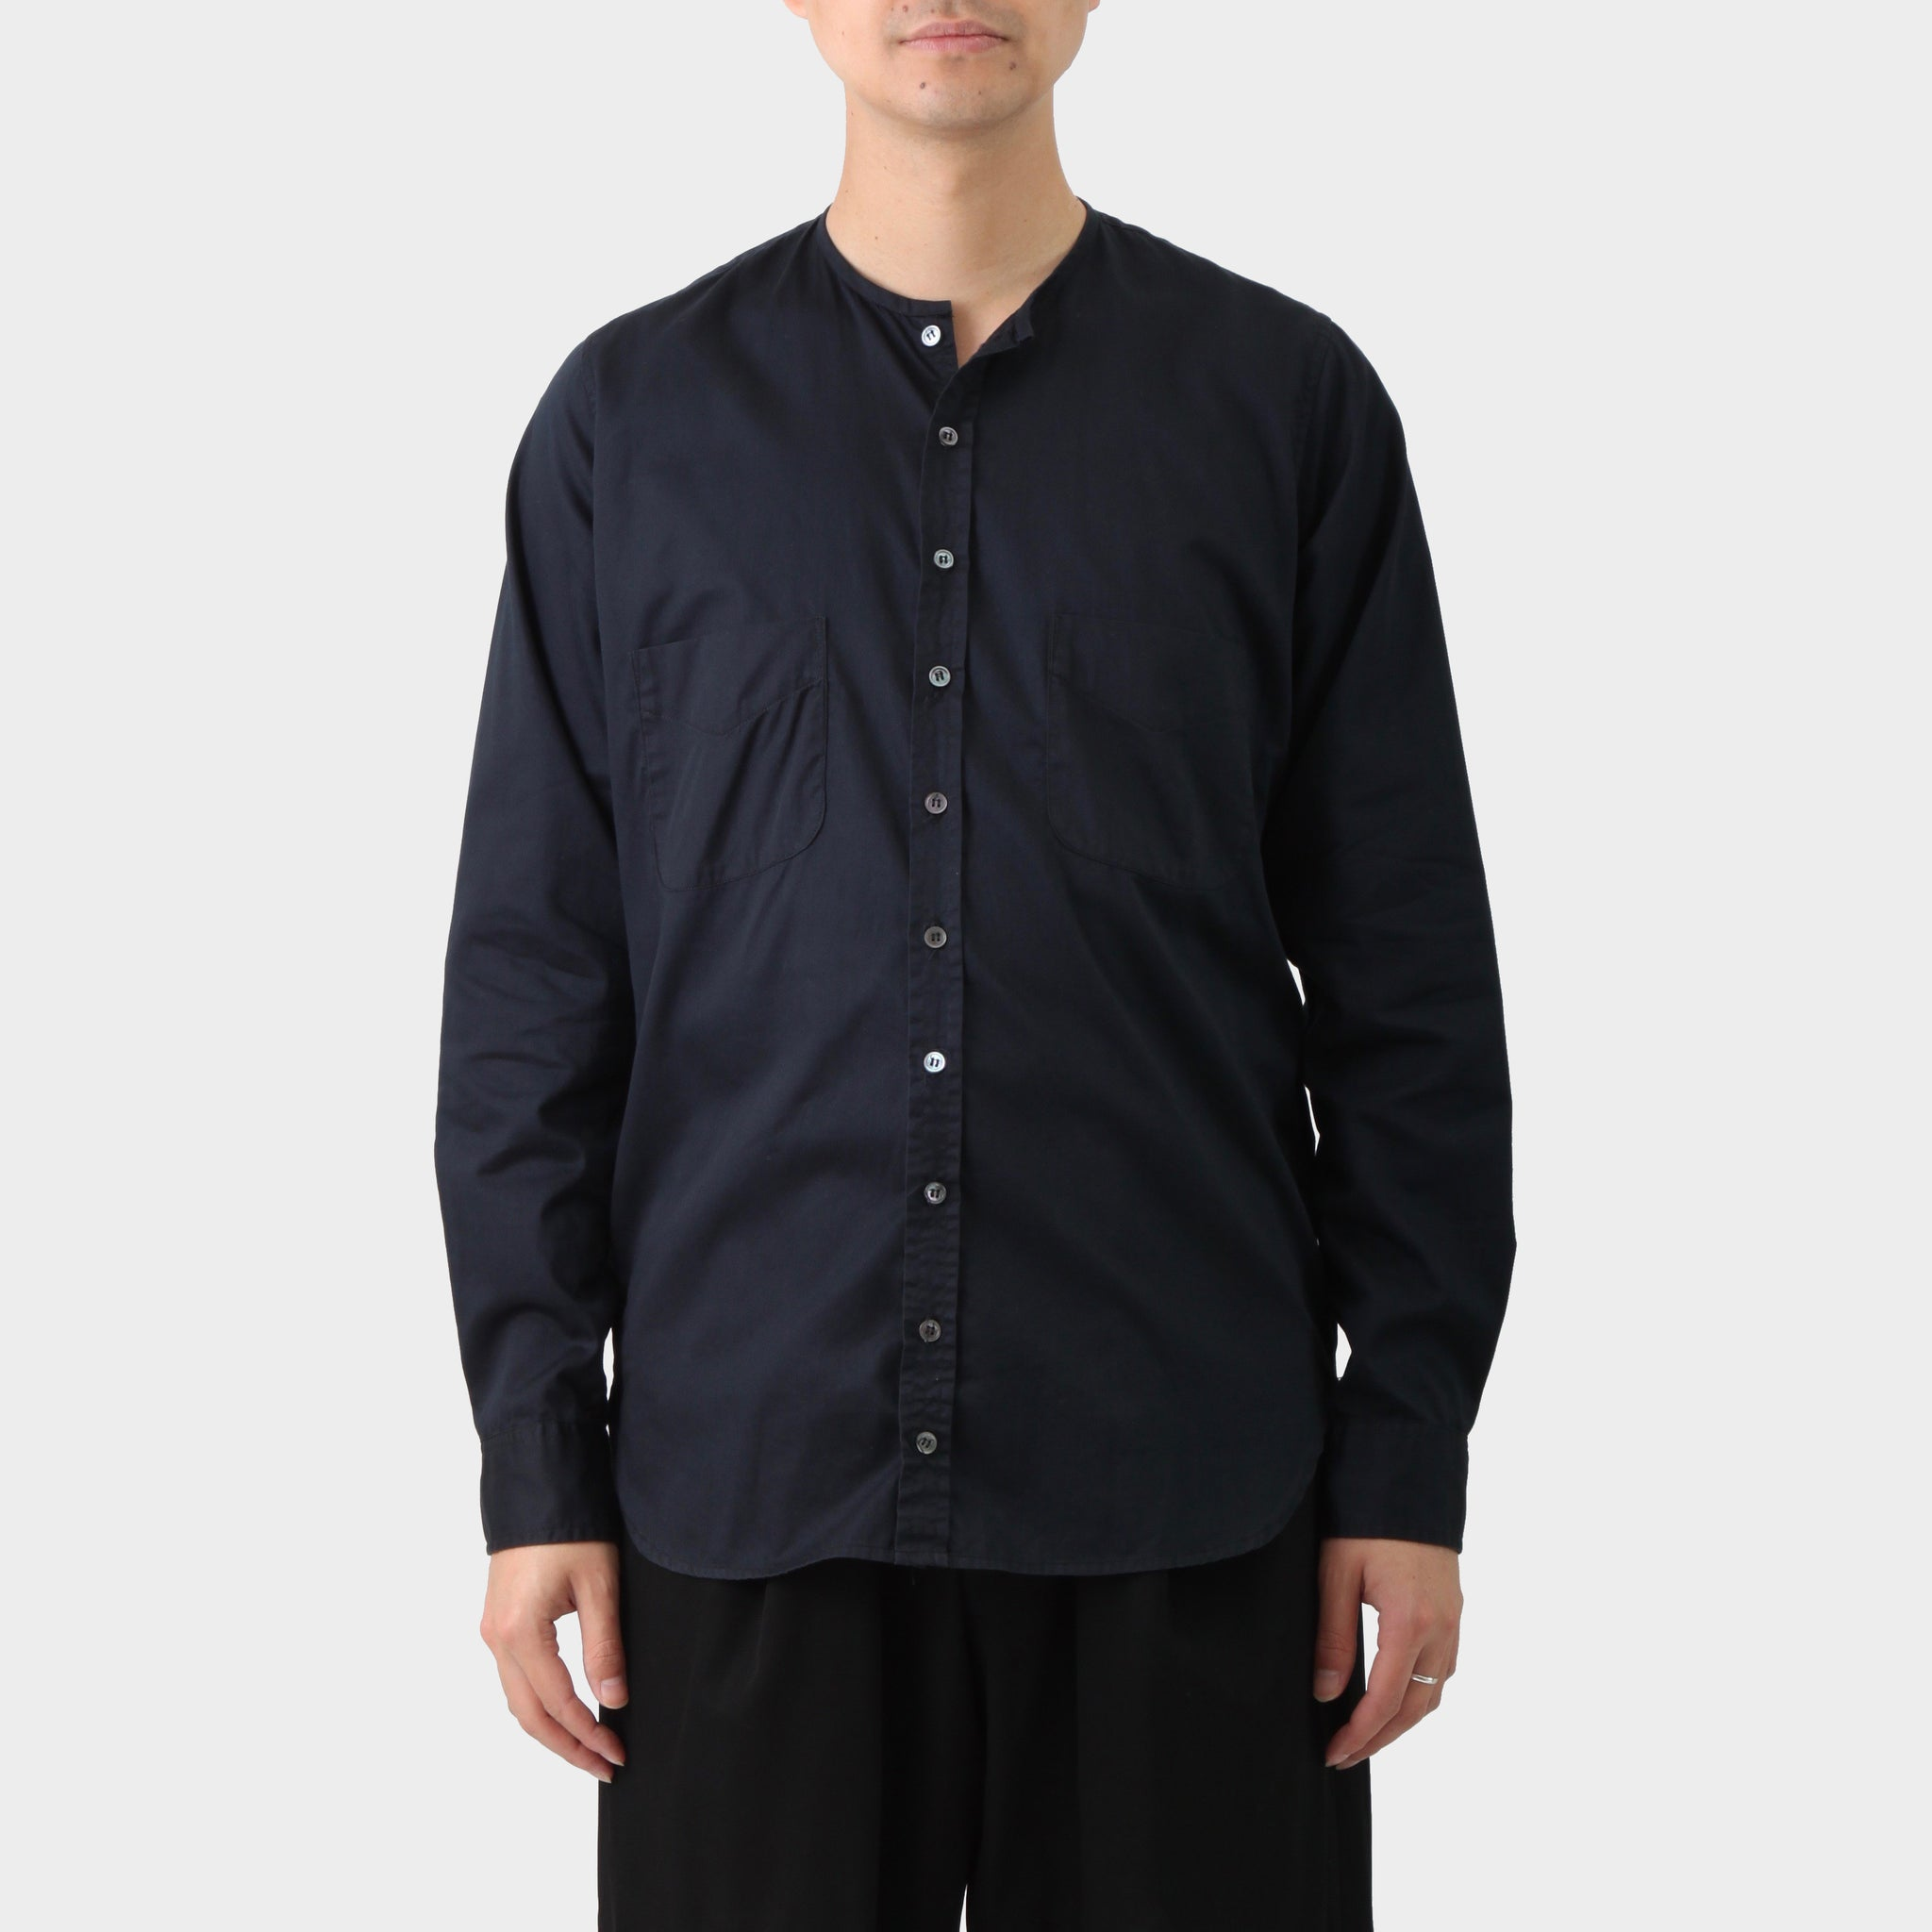 Paul Harnden Shoemakers Navy Collarless Shirt